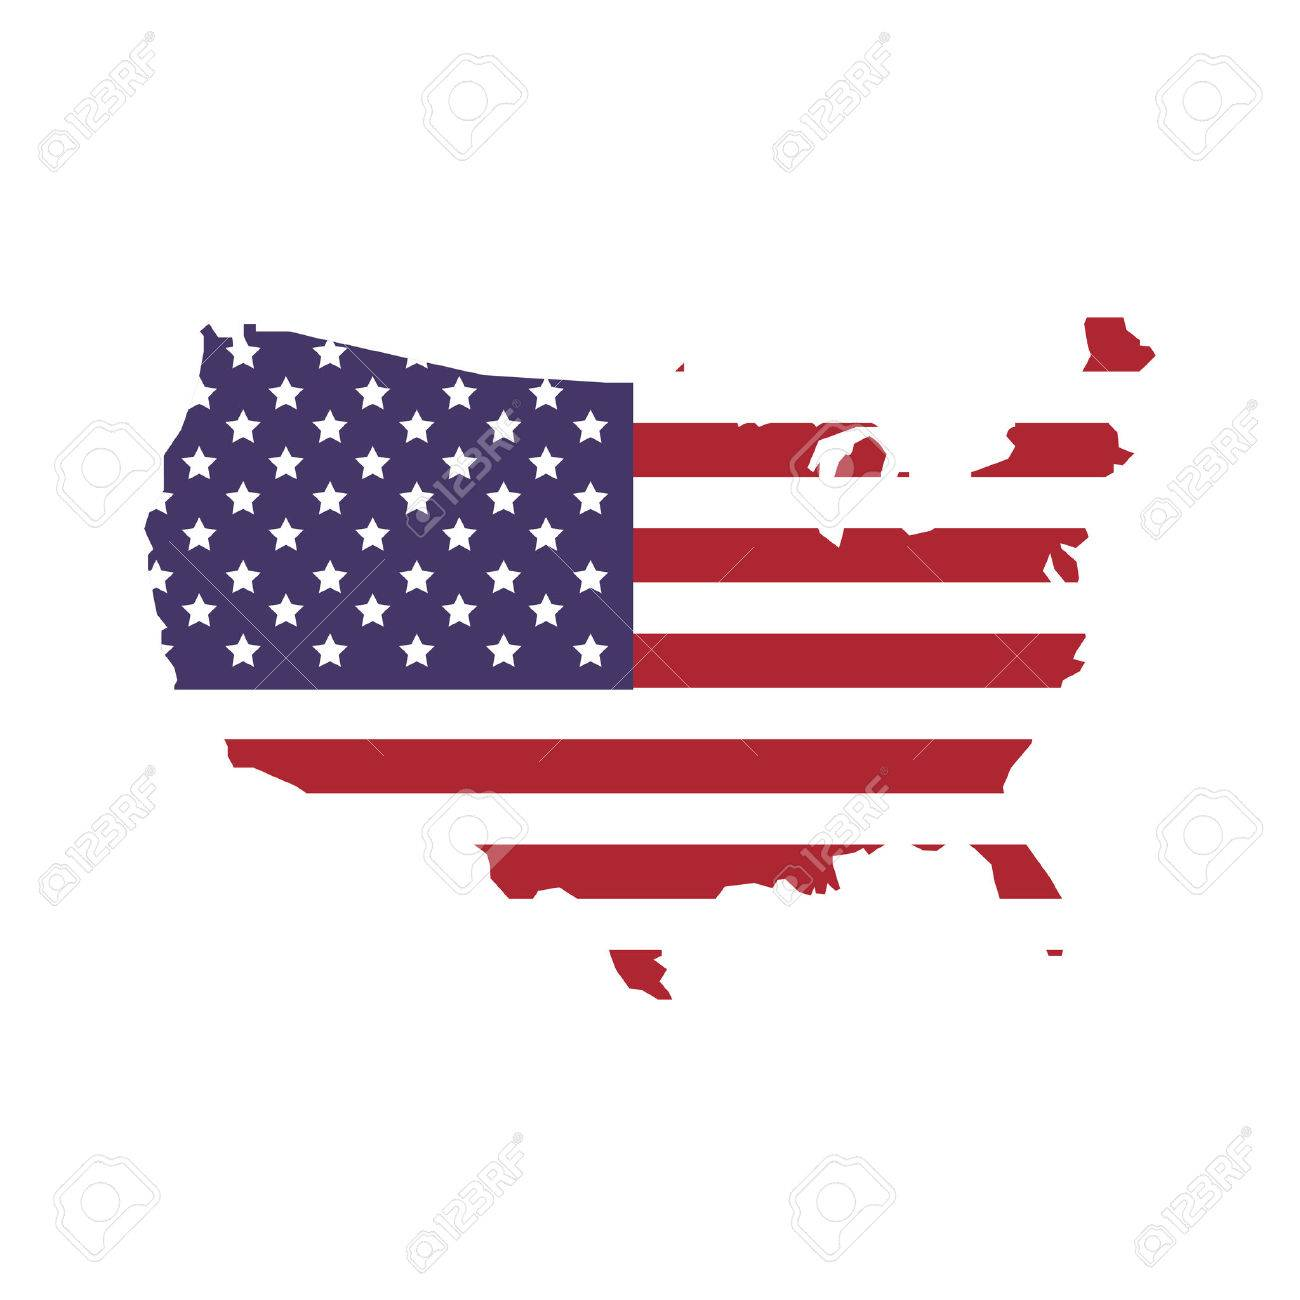 USA concept represented by map and flag icon. isolated and flat illustration - 59406109